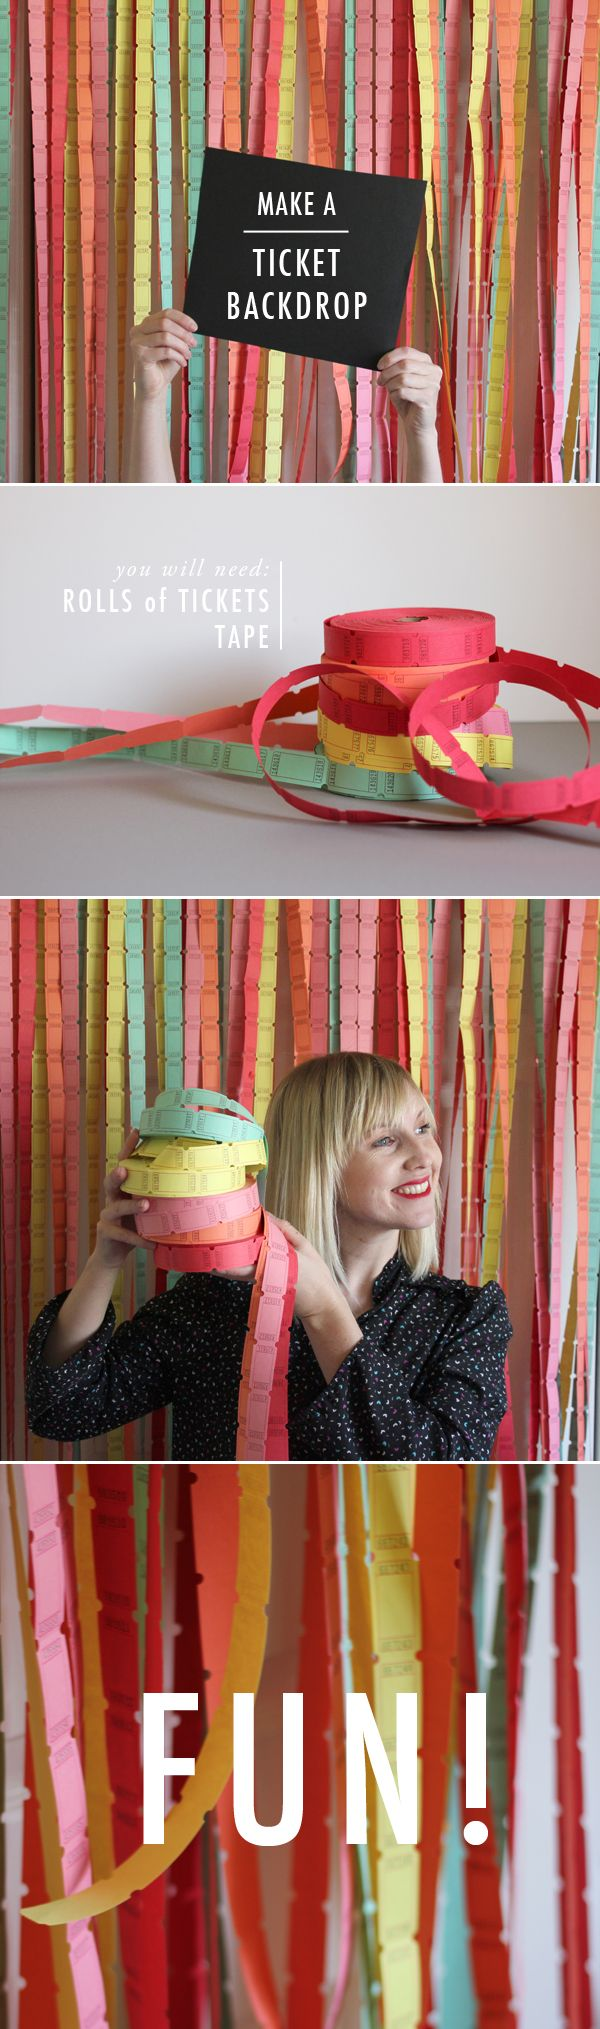 Perfect for a Circus Birthday Party! A TICKET-BACKDROP